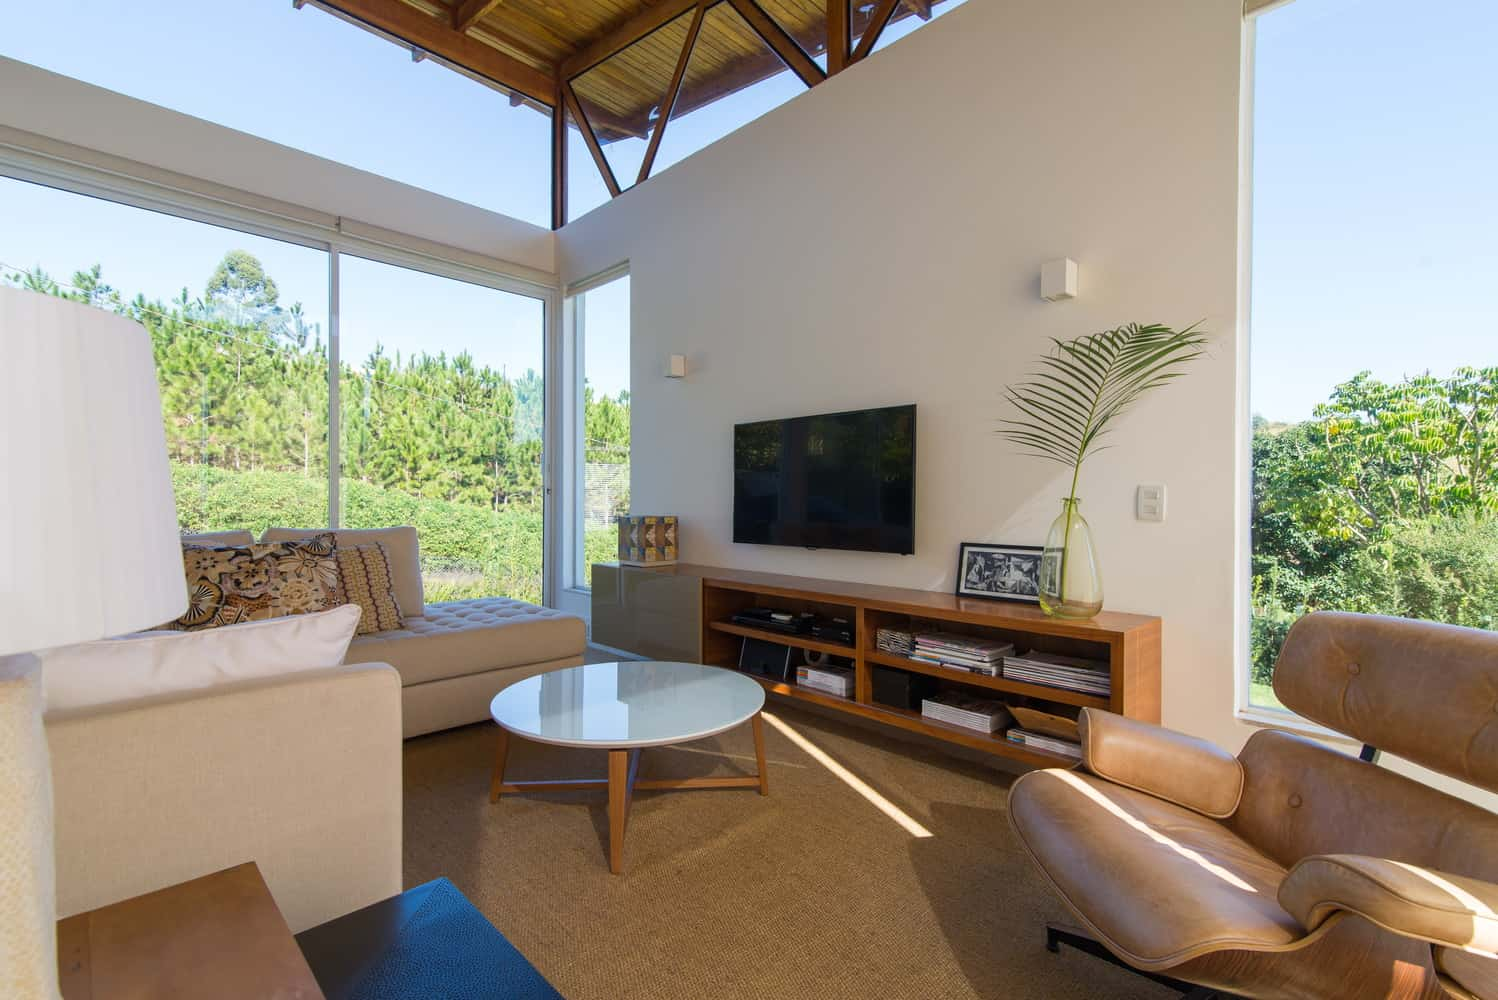 House with Wonderful Natural Surroundings Perfectly Integrated to the Interior